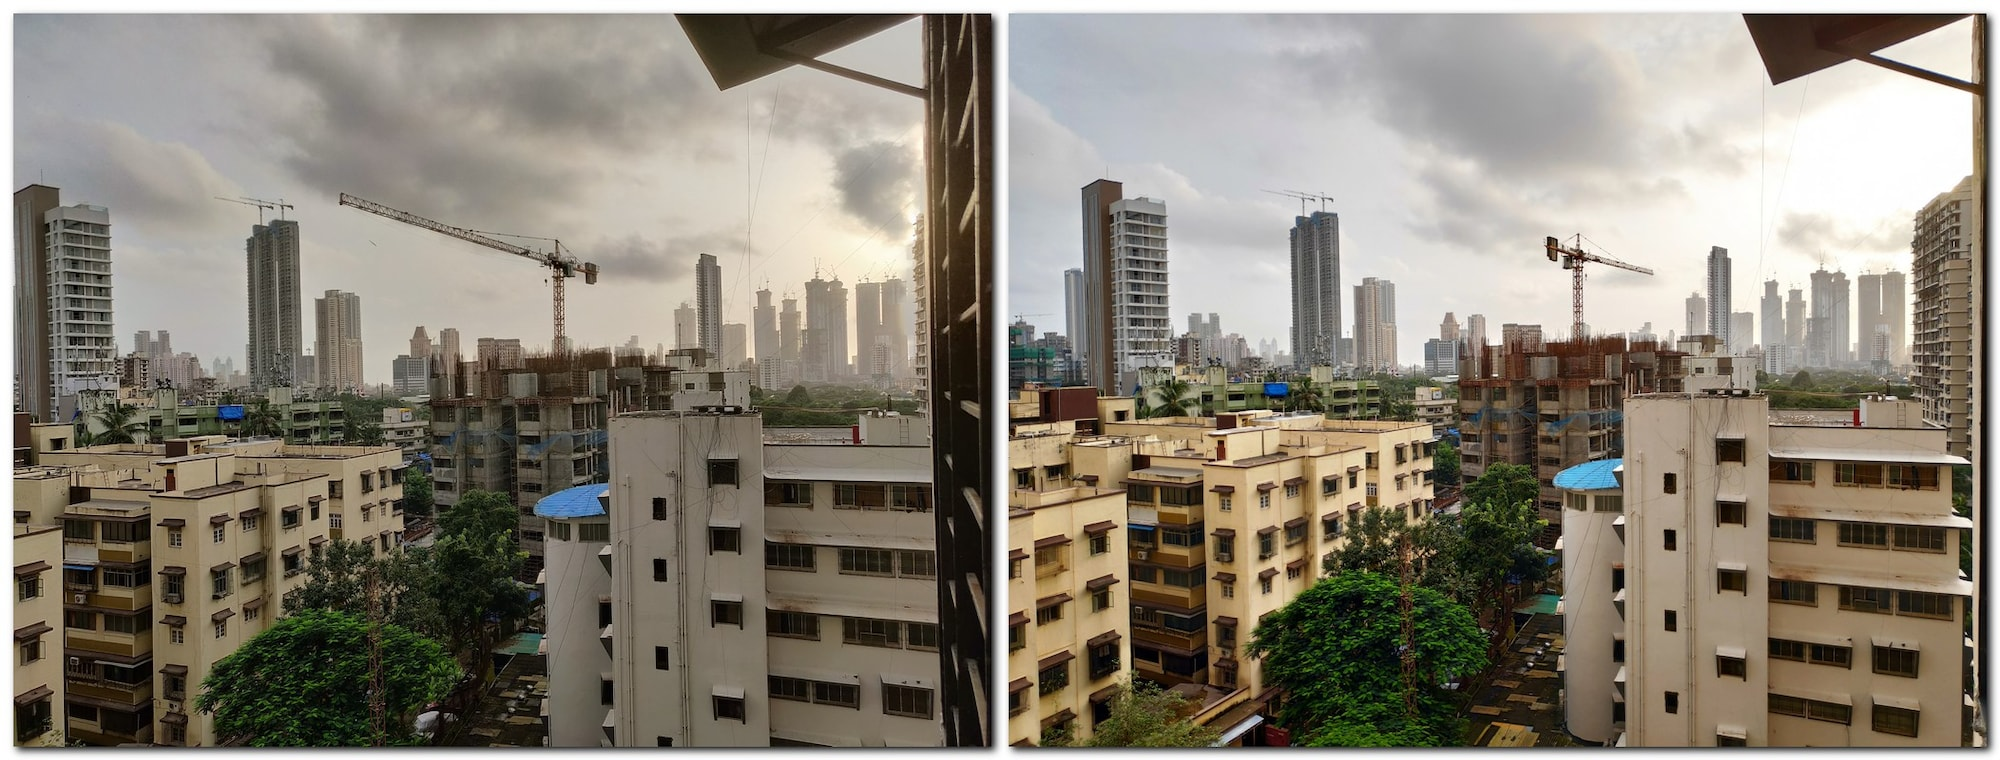 Landscape mode (with HDR) on the OnePlus 6 (left) vs the POCO F1 (right).